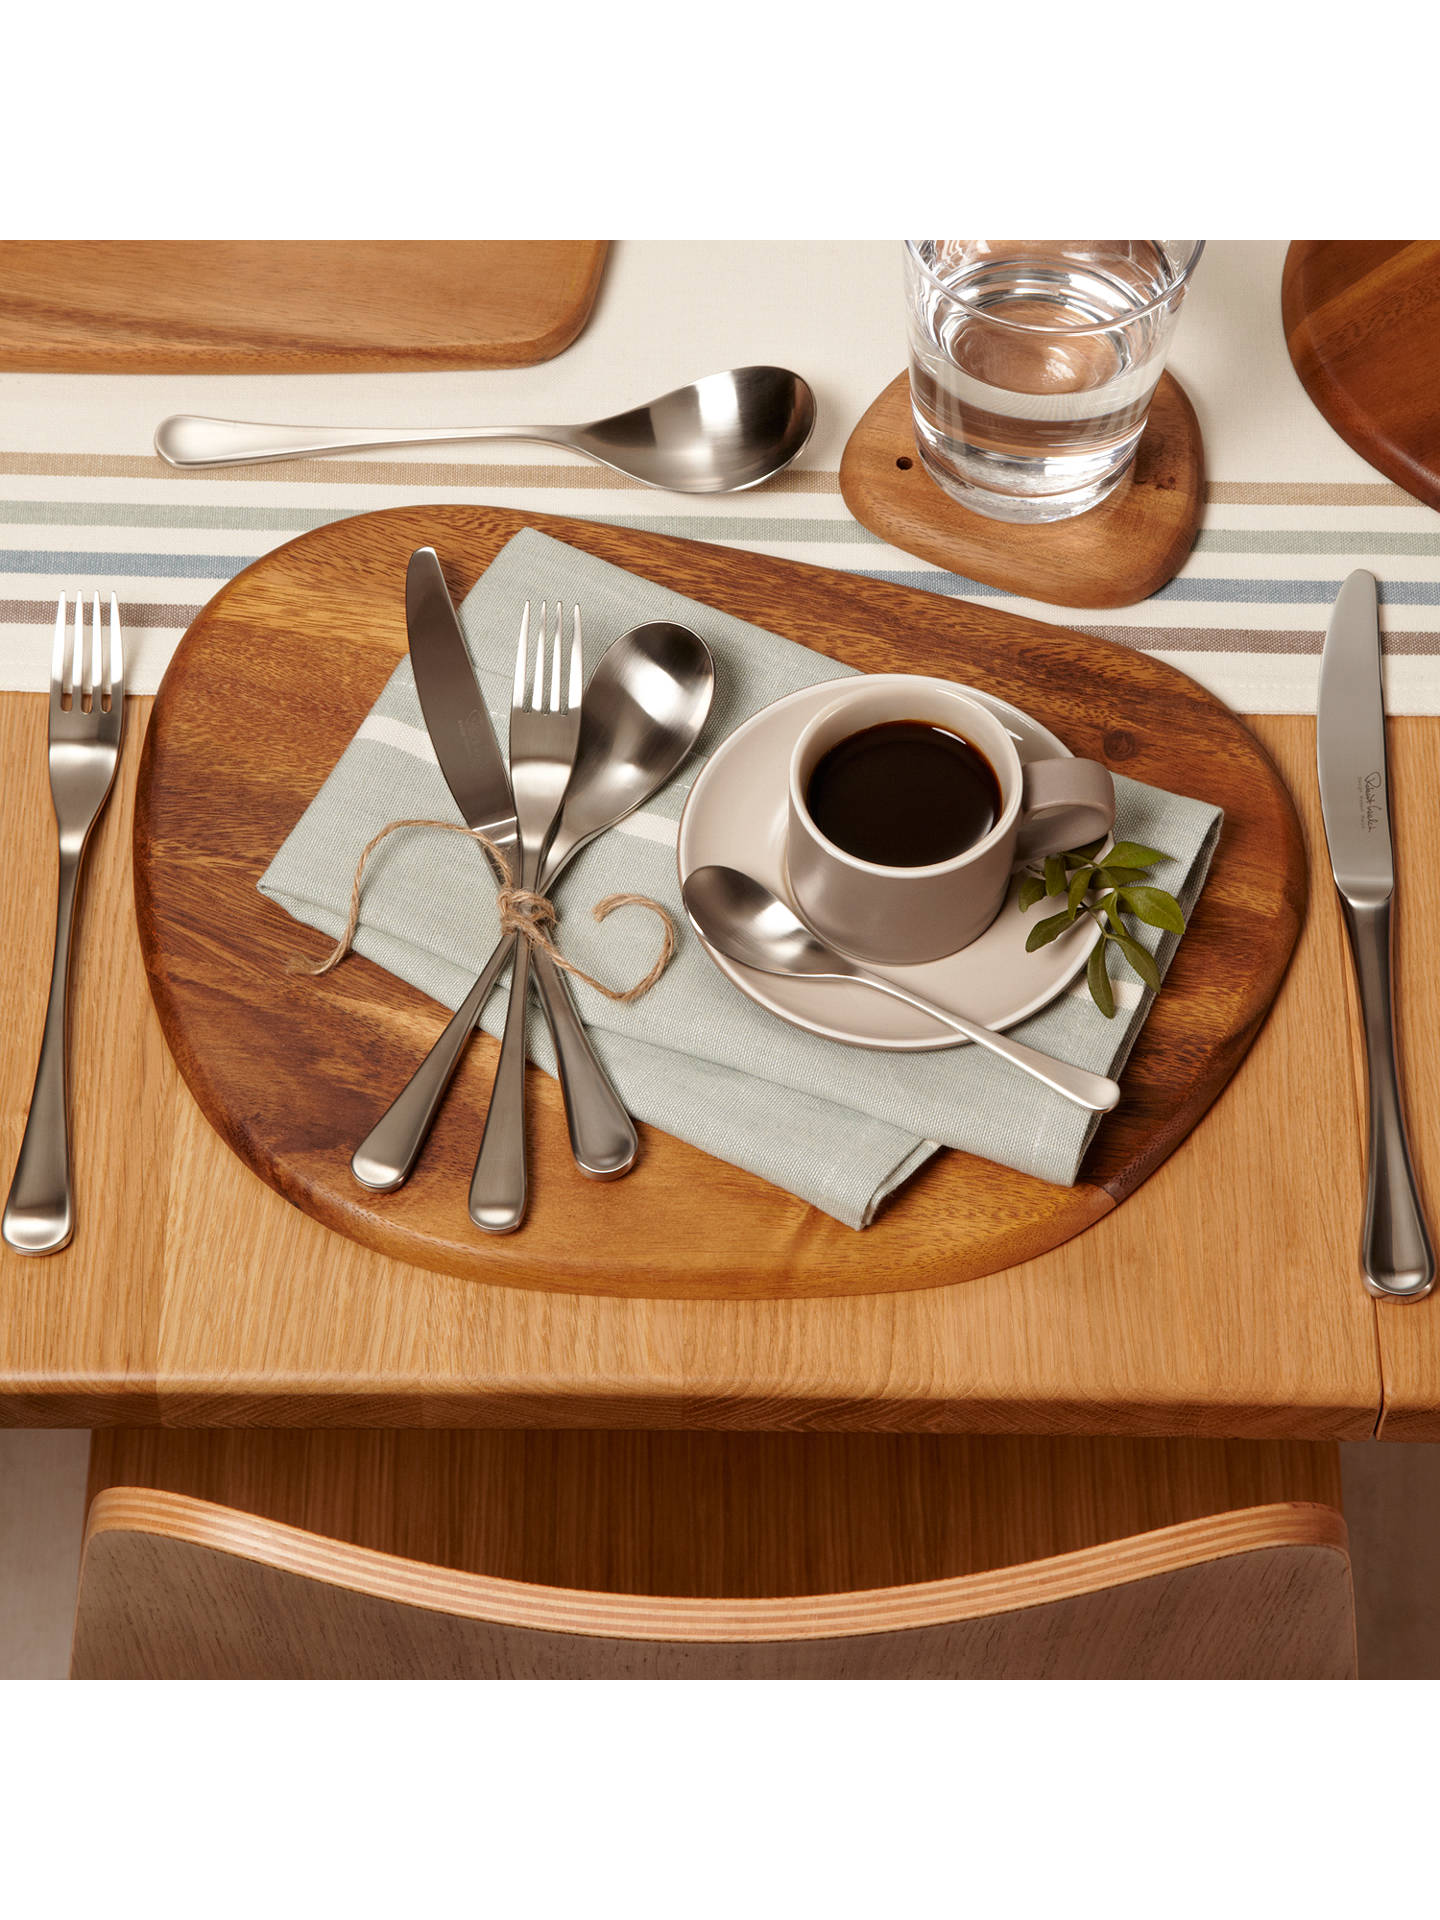 Buy Robert Welch RW2 Satin Cutlery Set, 7 Piece/1 Place Setting Online at johnlewis.com